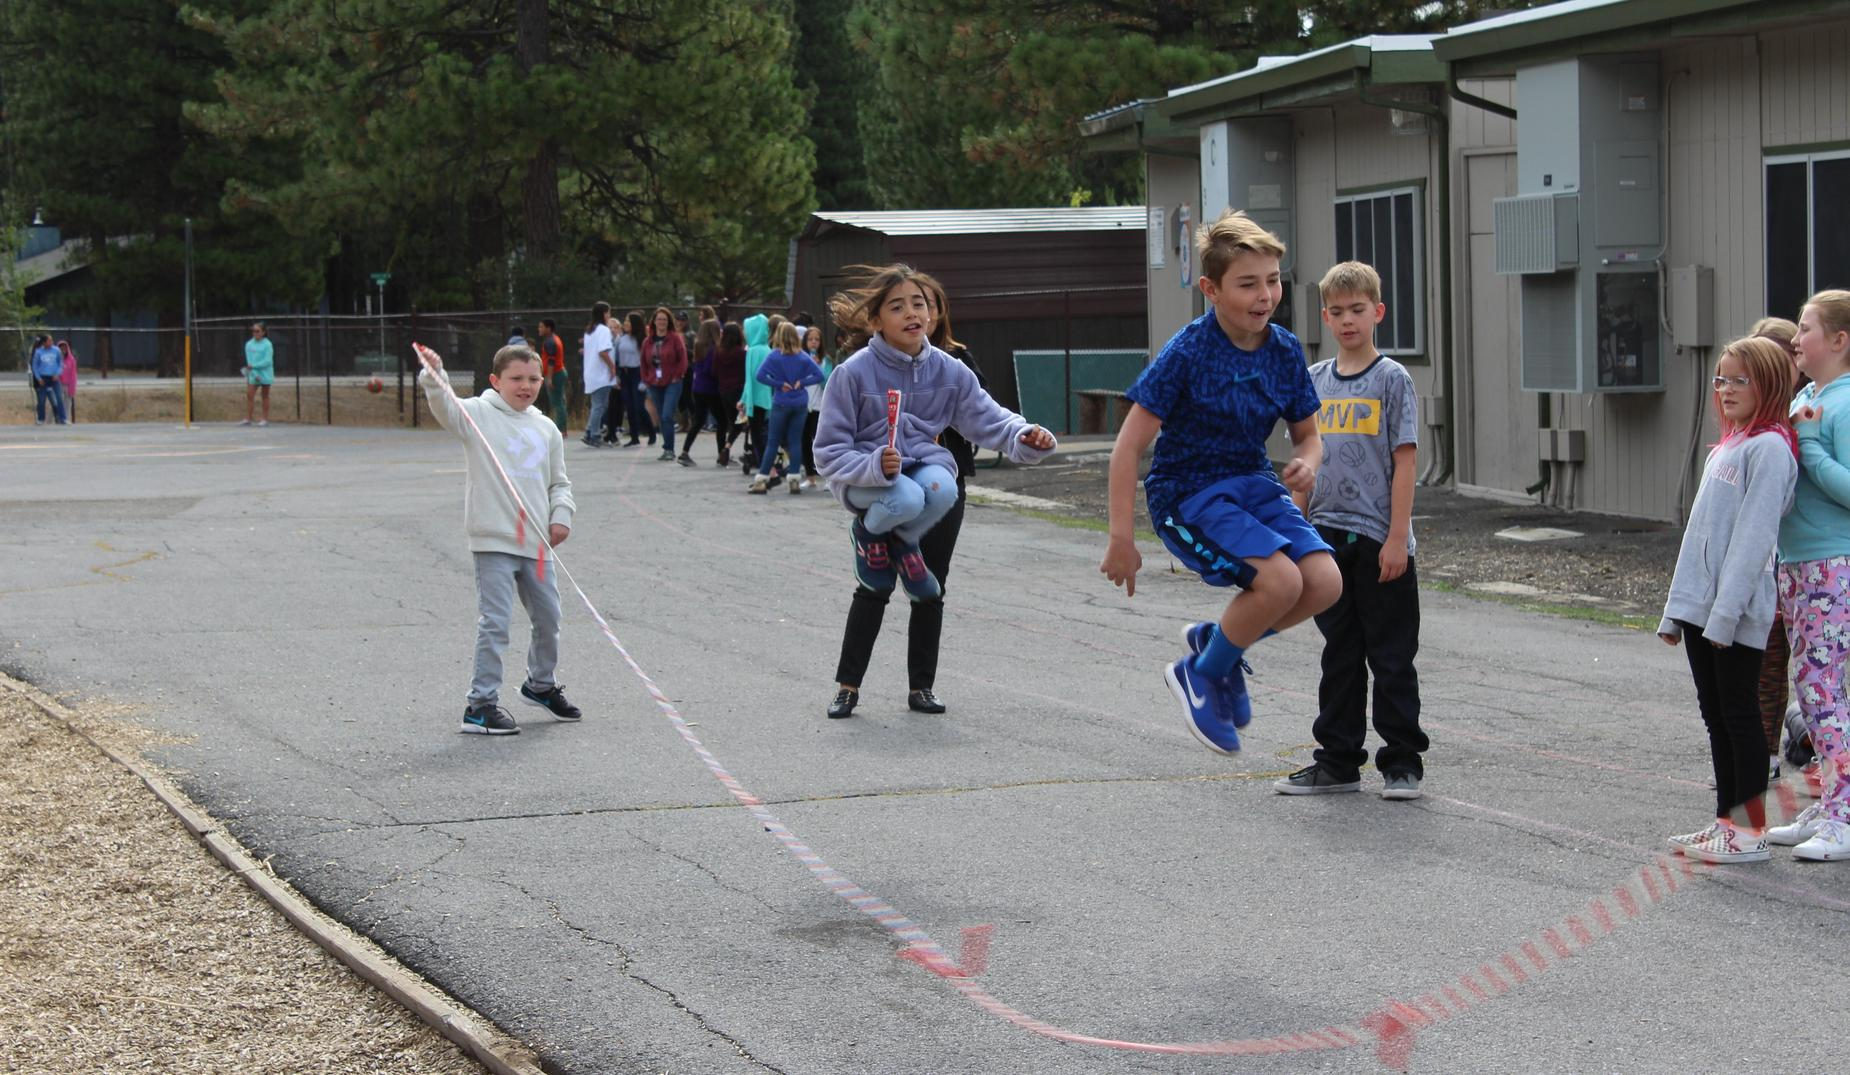 Jumprope time